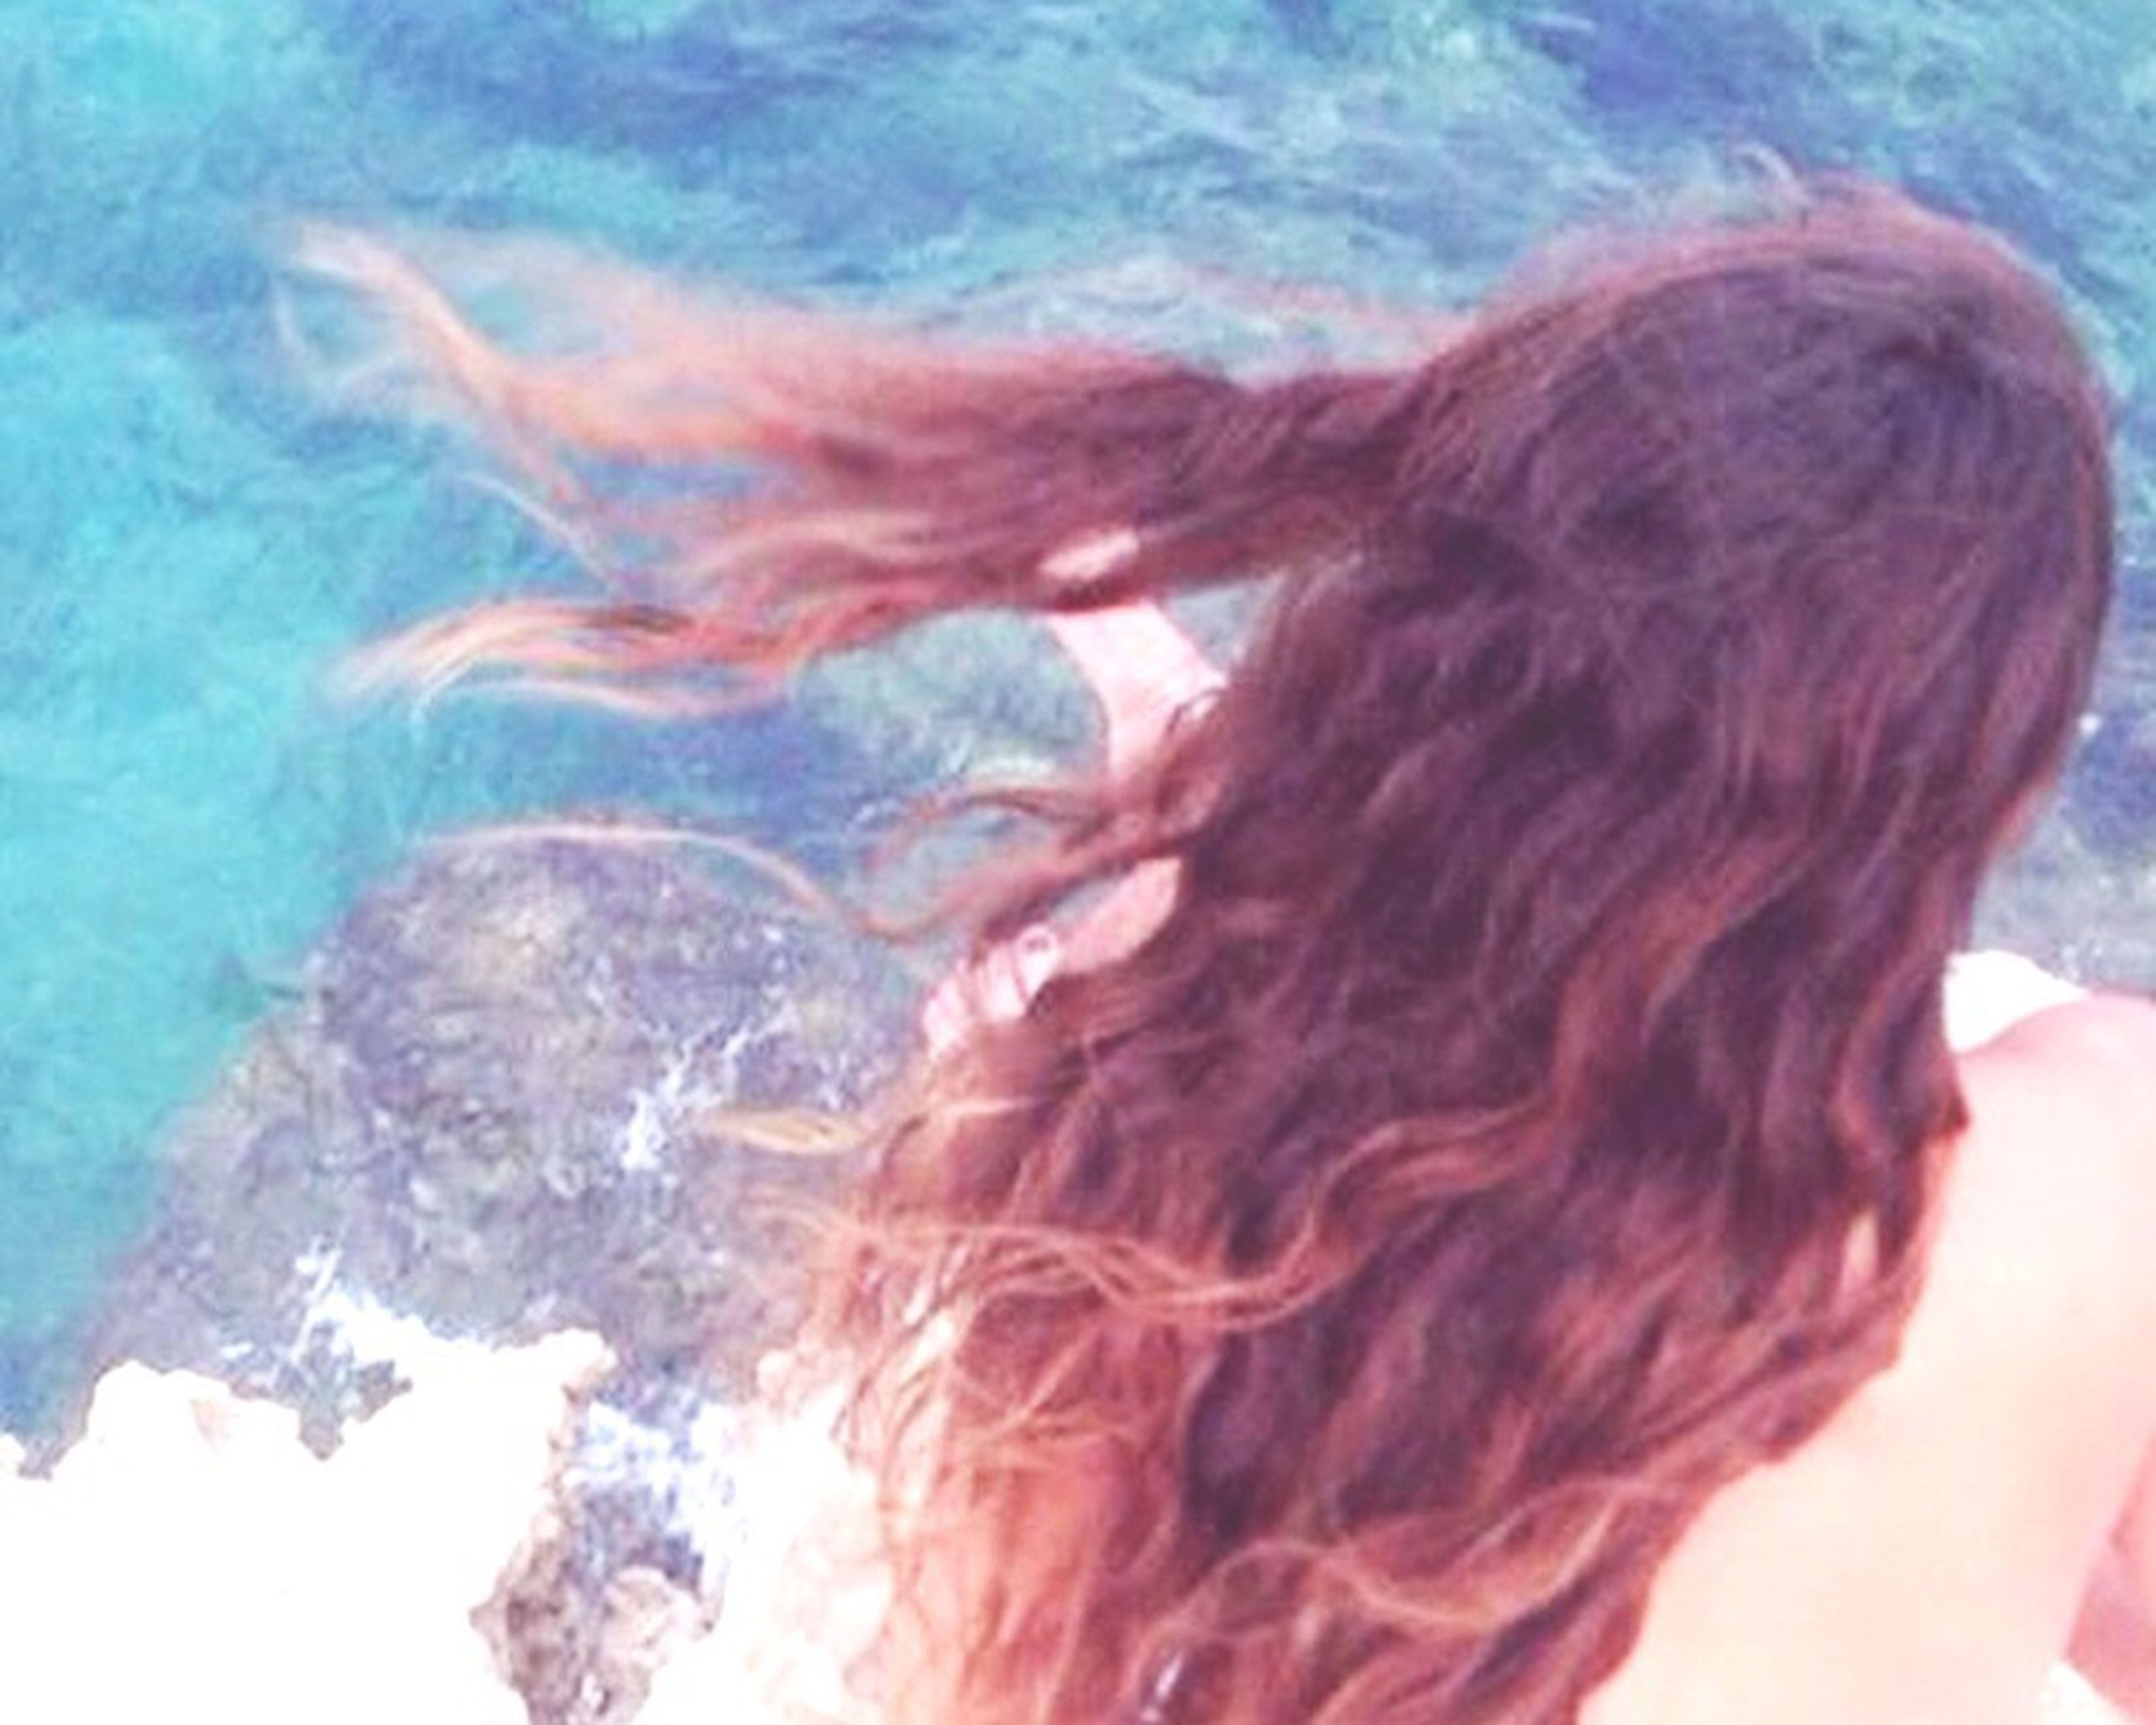 lifestyles, water, leisure activity, headshot, long hair, young adult, young women, person, rear view, sea, vacations, day, sunlight, close-up, high angle view, motion, waist up